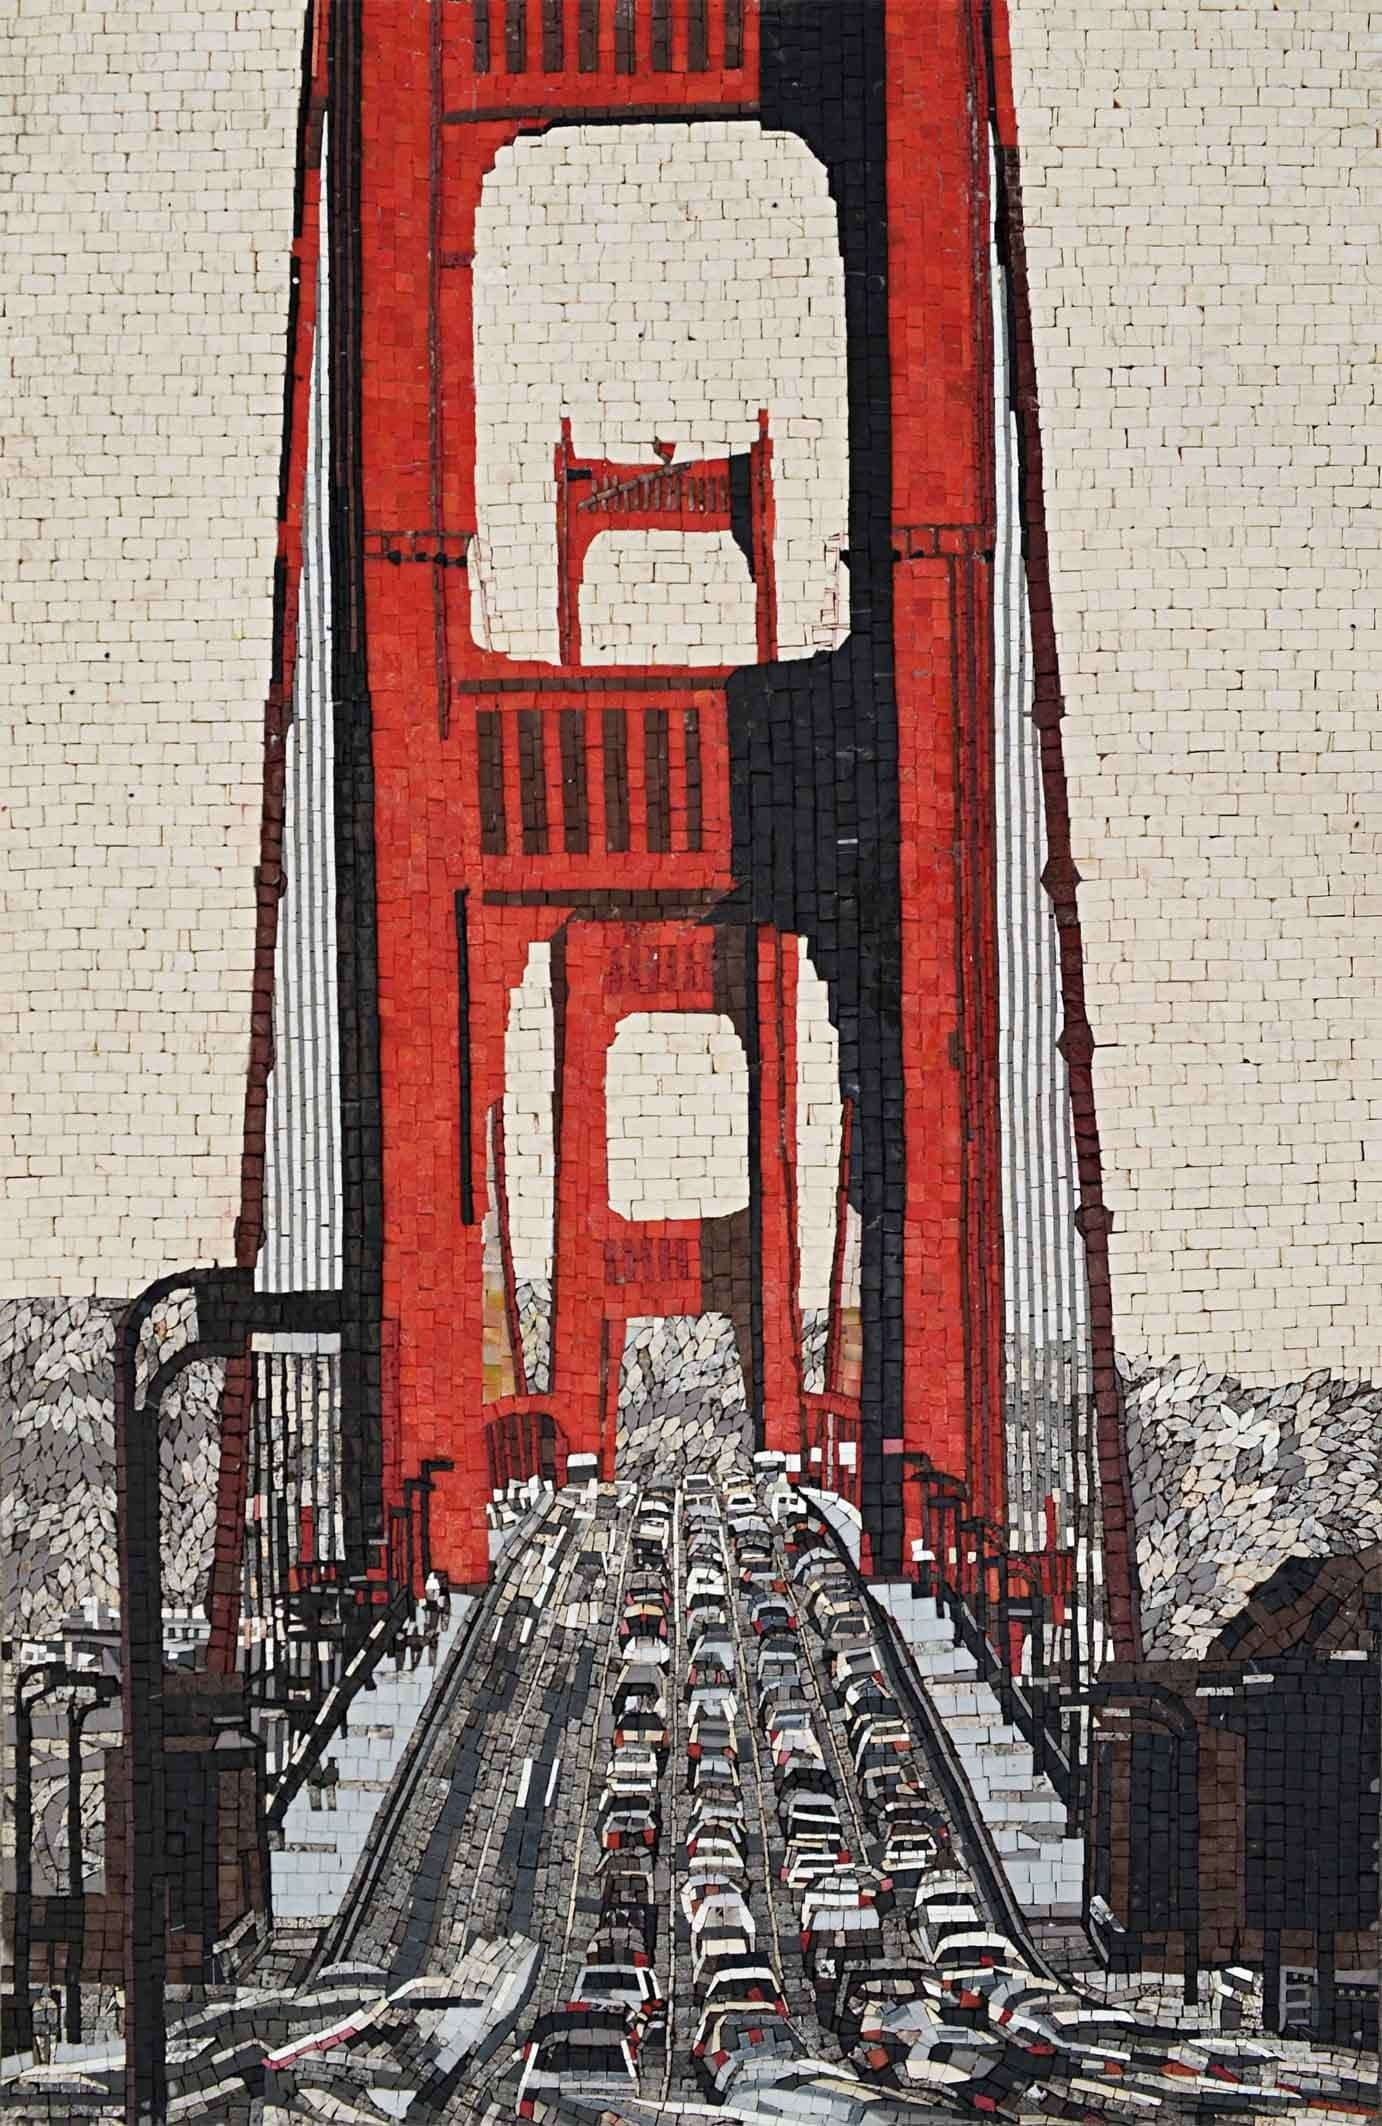 mosaic mural san francisco golden gate bridge scenery mozaico mosaic mural san francisco golden gate bridge ms575